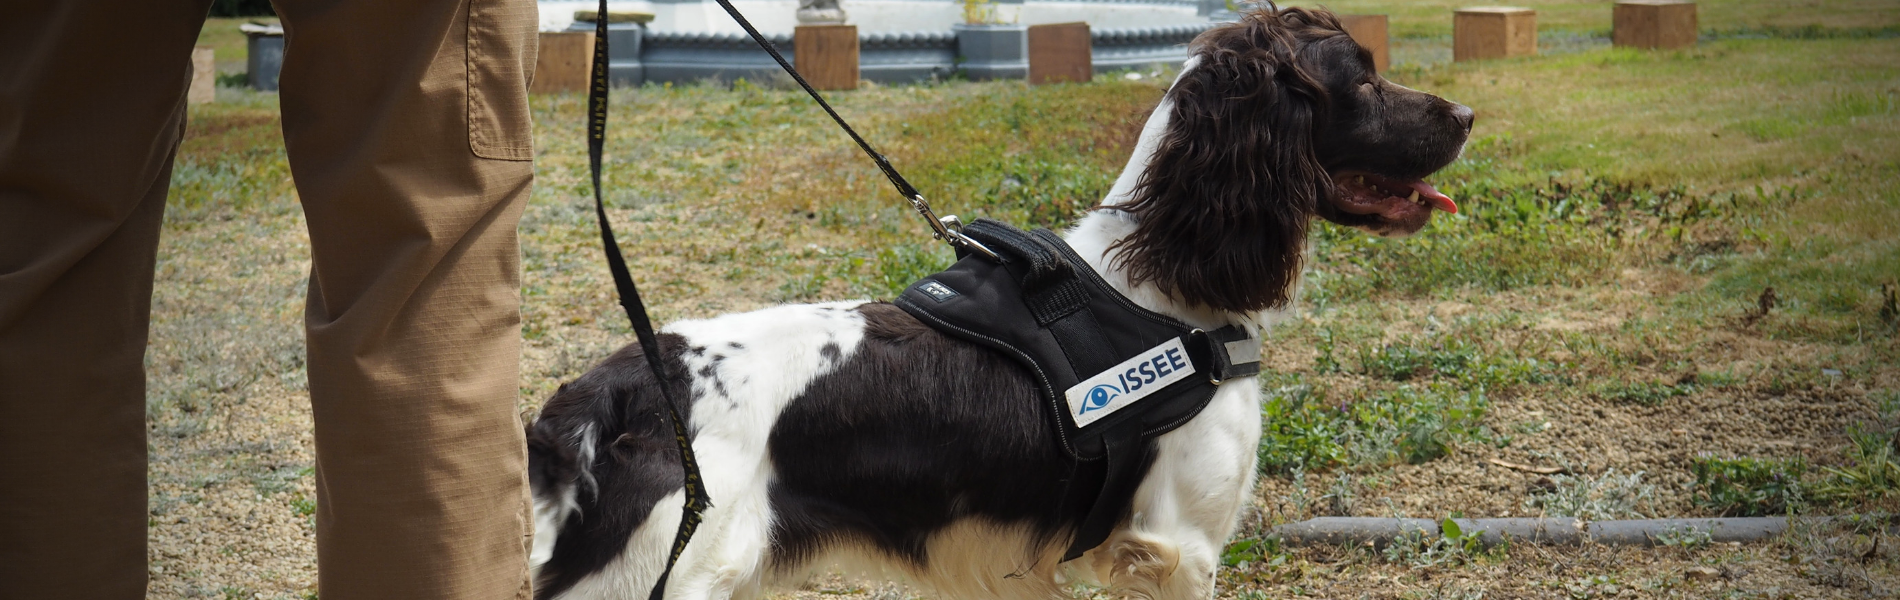 A spaniel dog wearing a coat as part of its explosive search kit